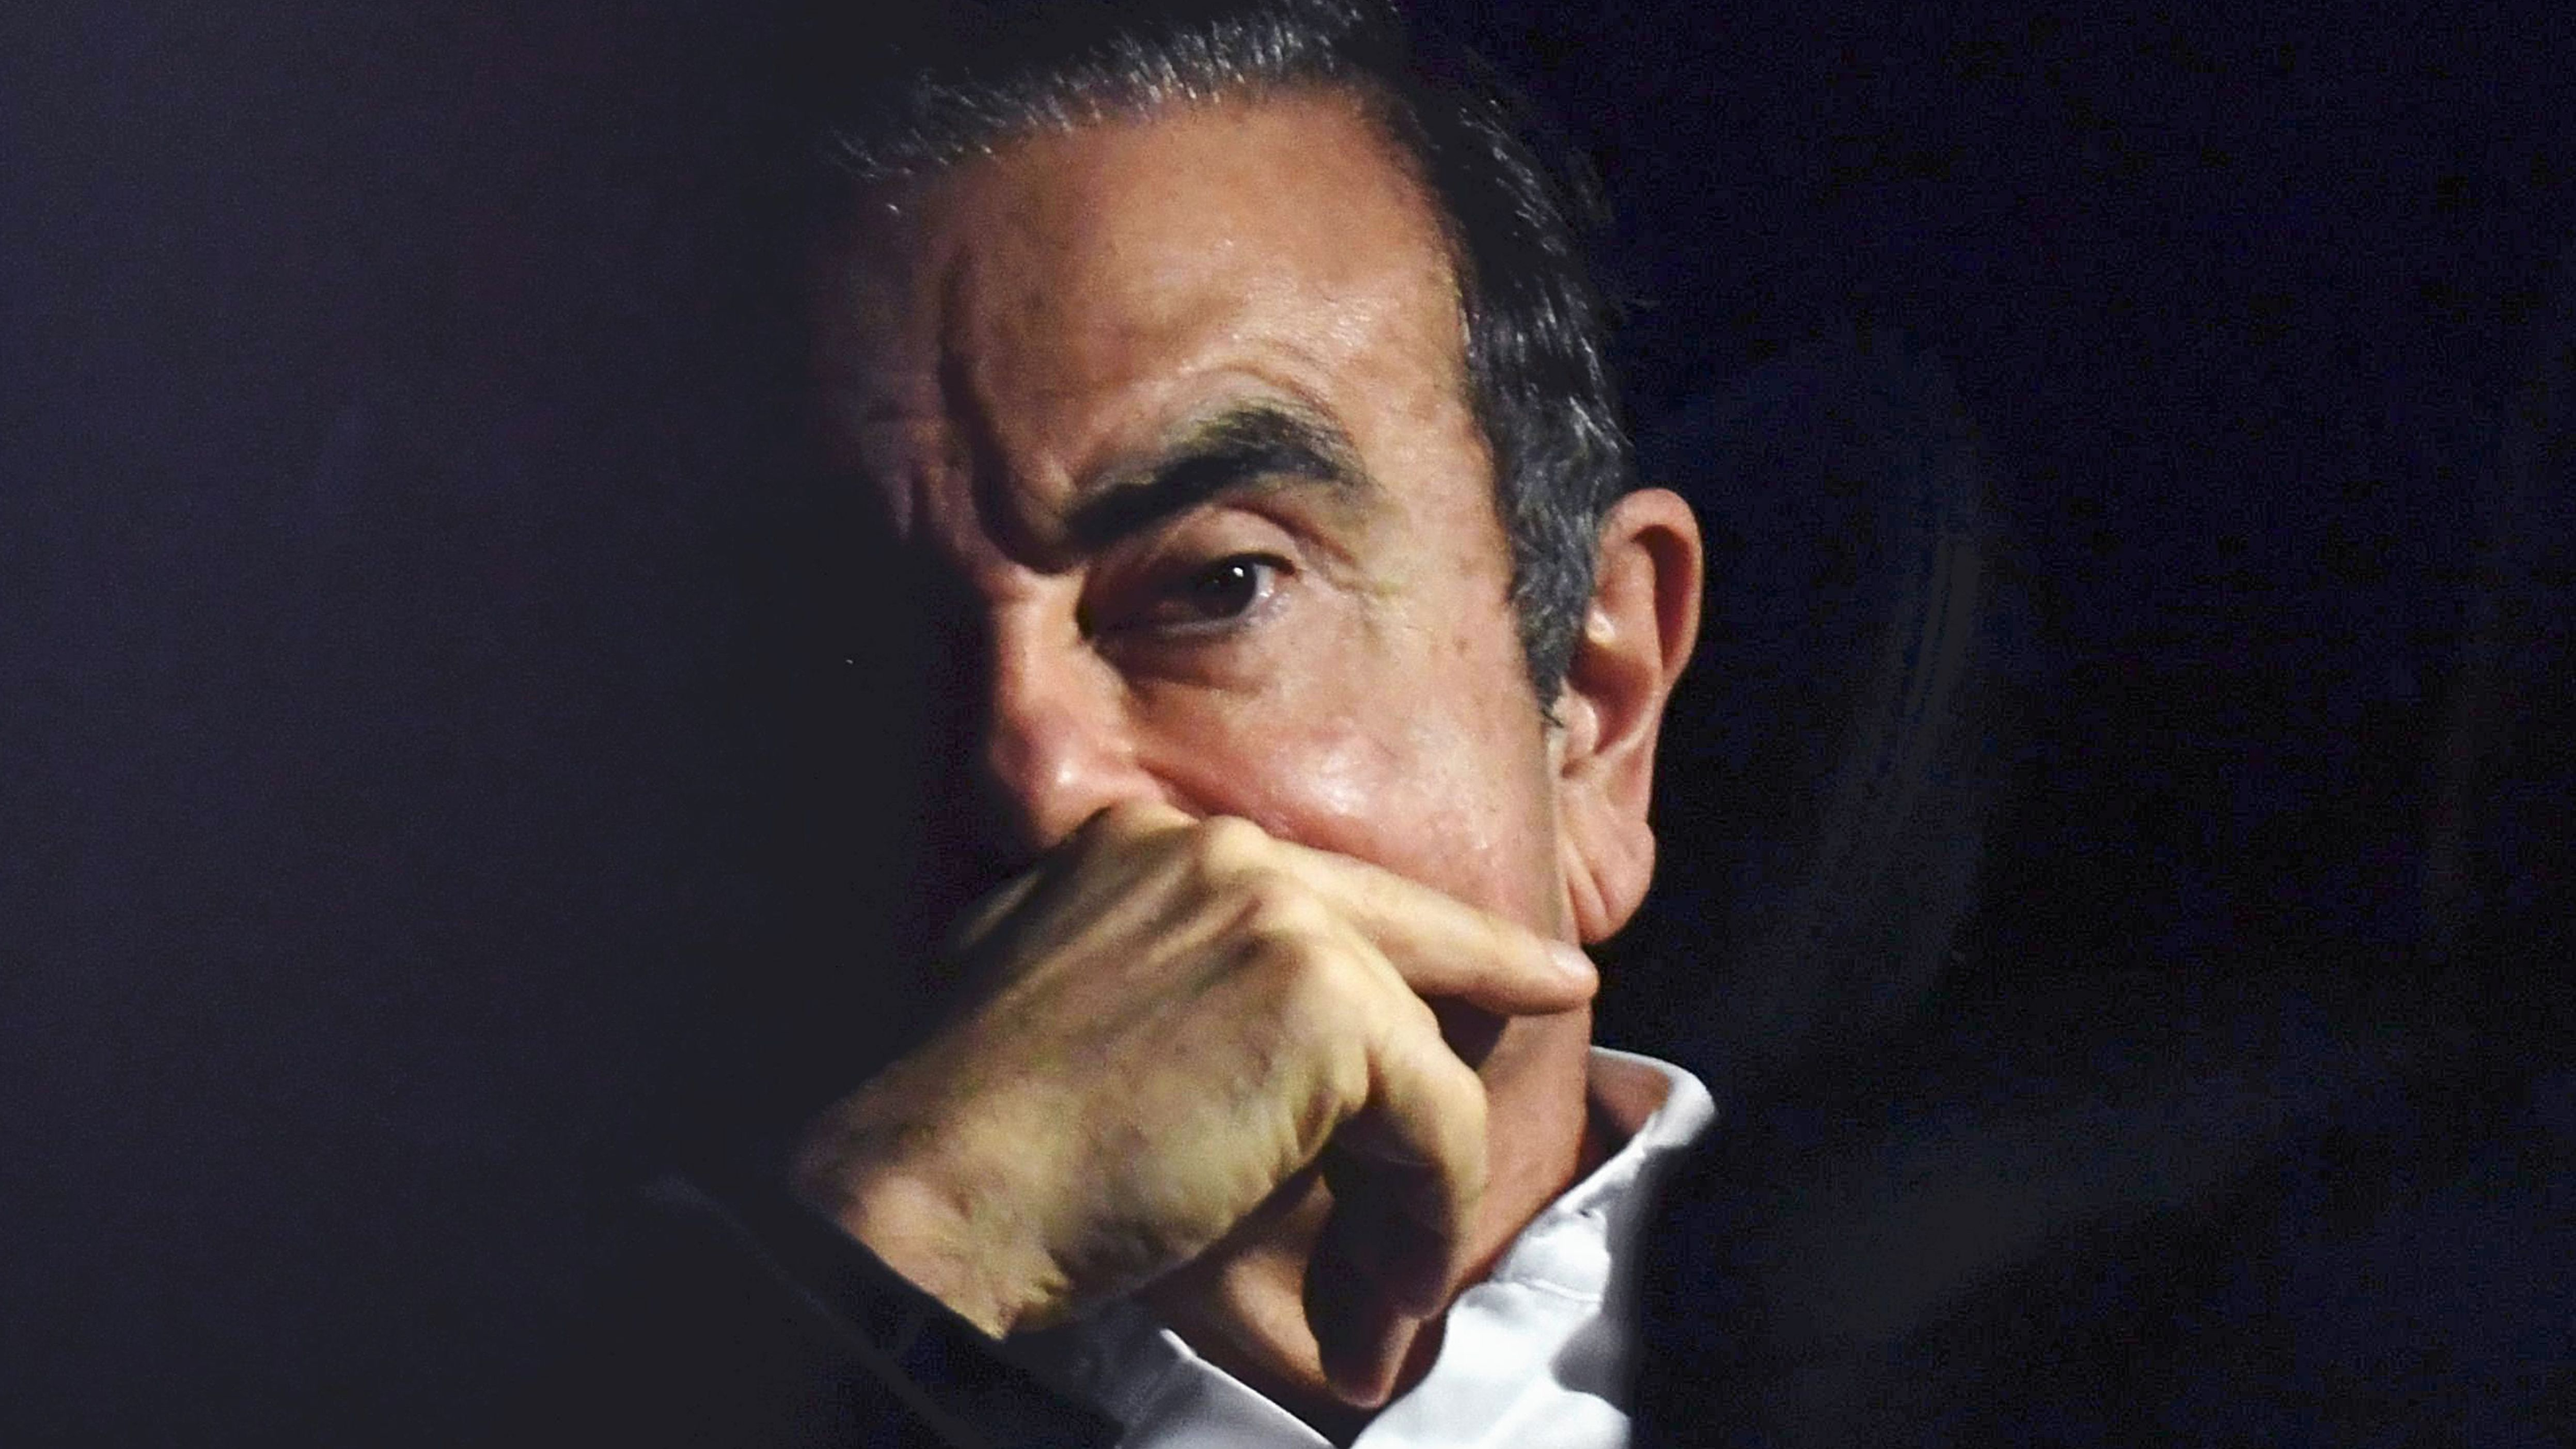 Ex-Renault-Chef Carlos Ghosn